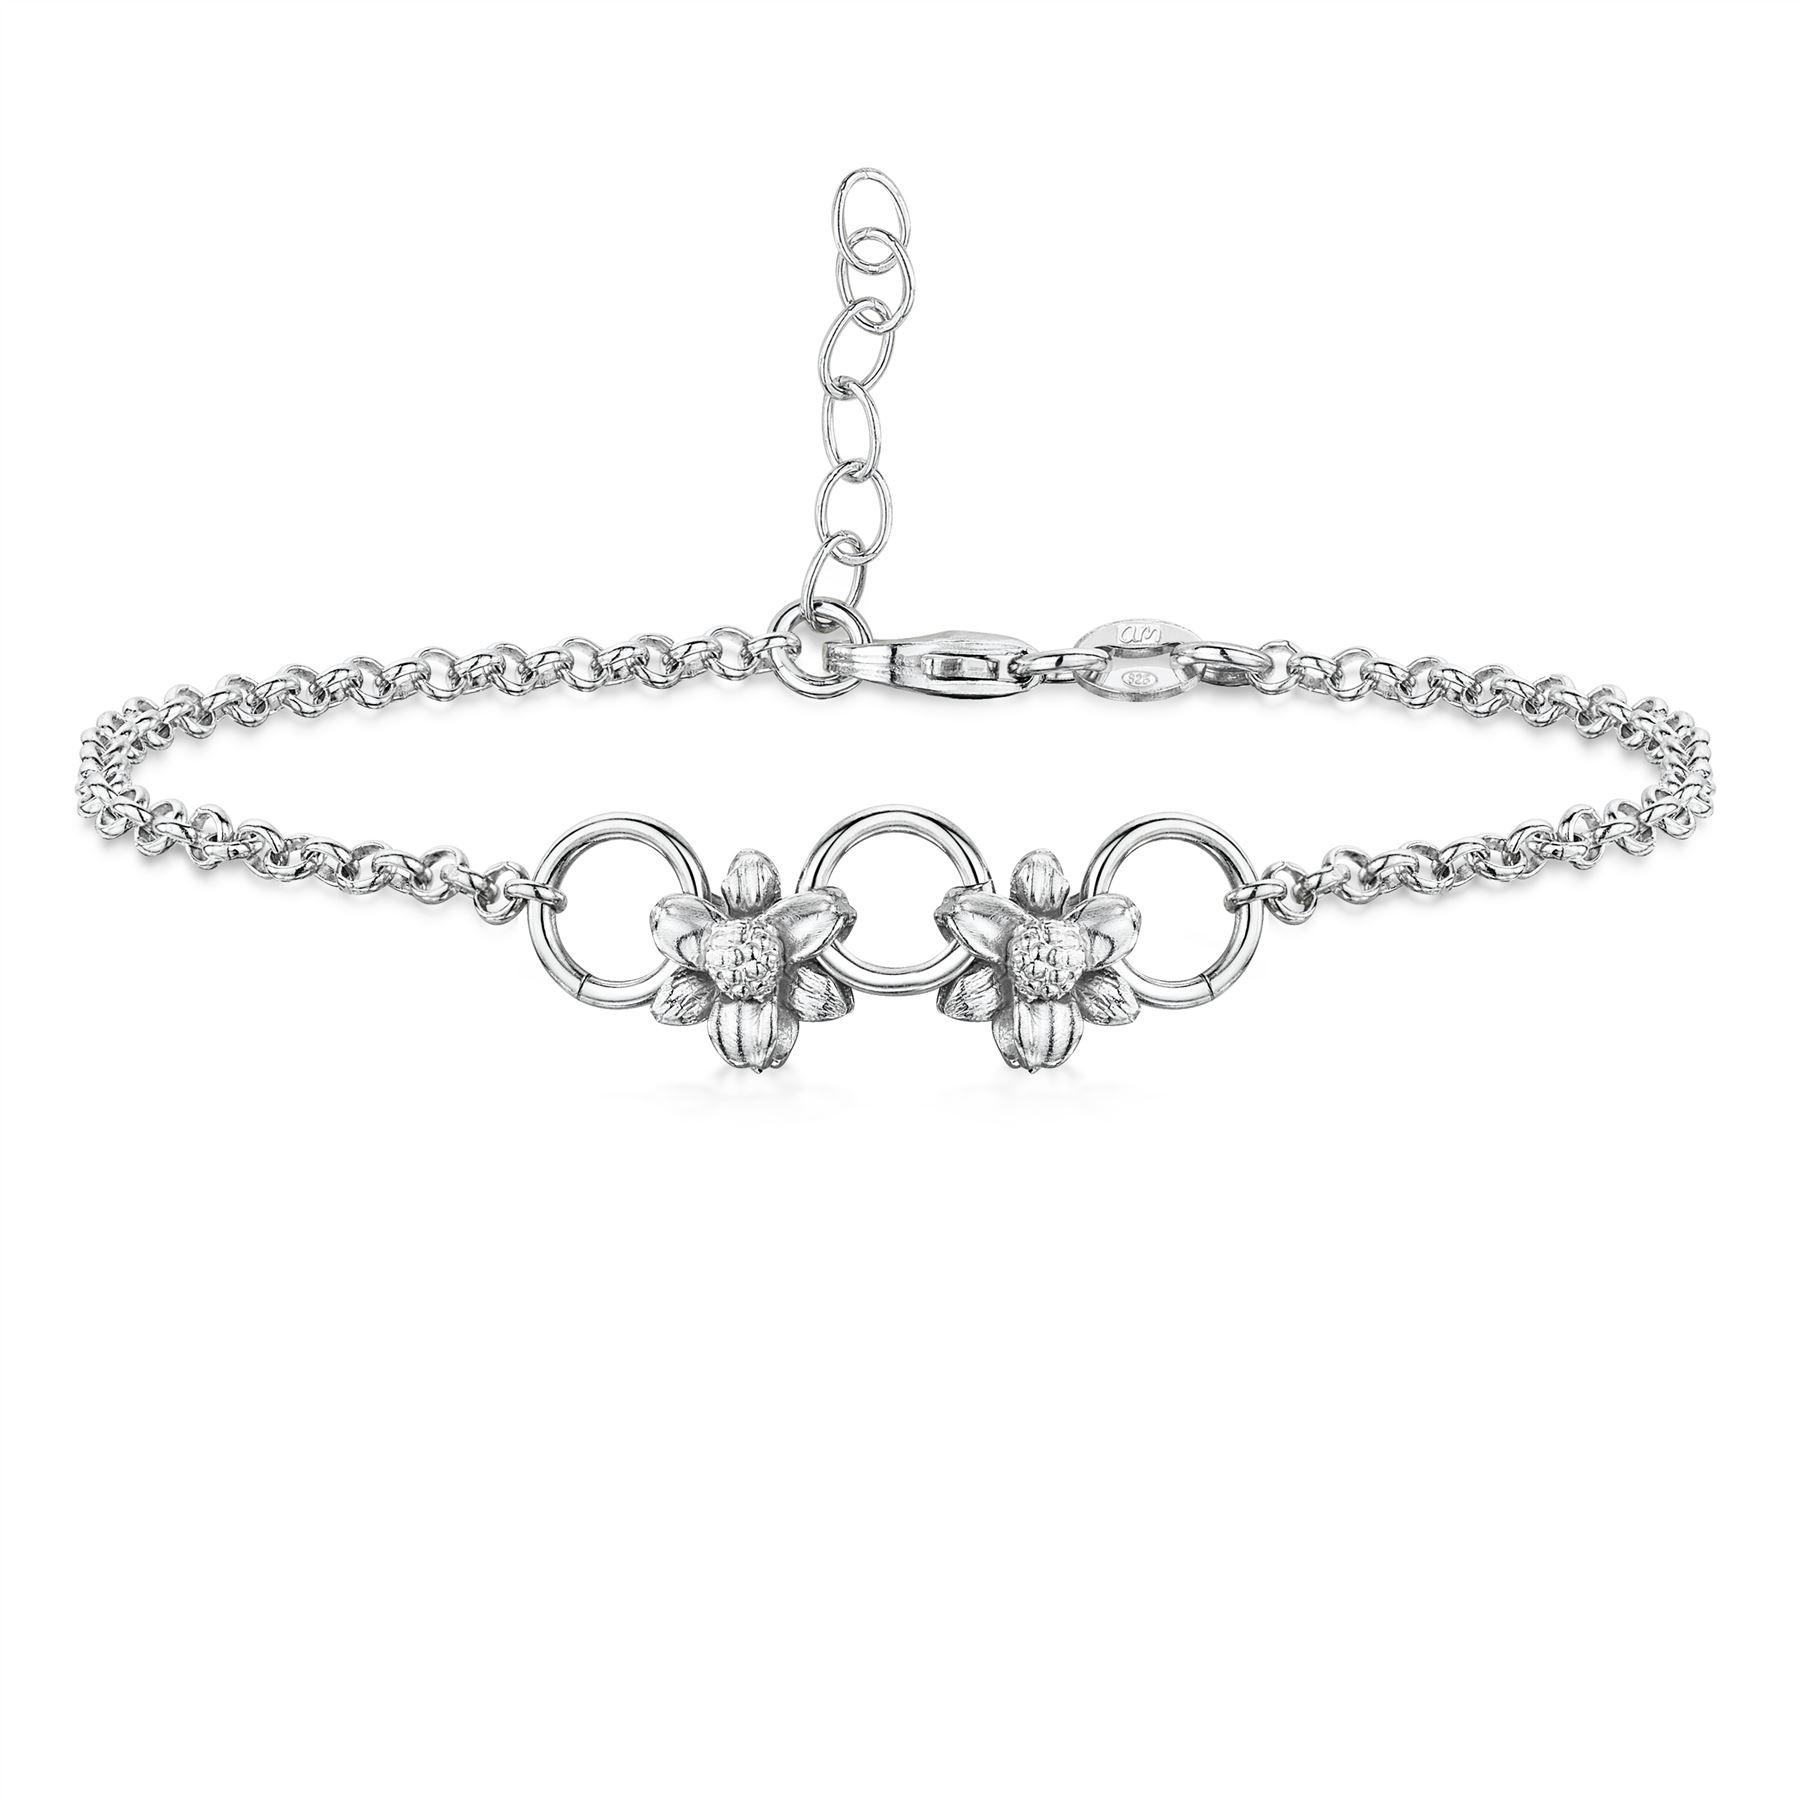 Amberta-Jewelry-925-Sterling-Silver-Adjustable-Anklet-for-Women-Made-in-Italy miniature 63